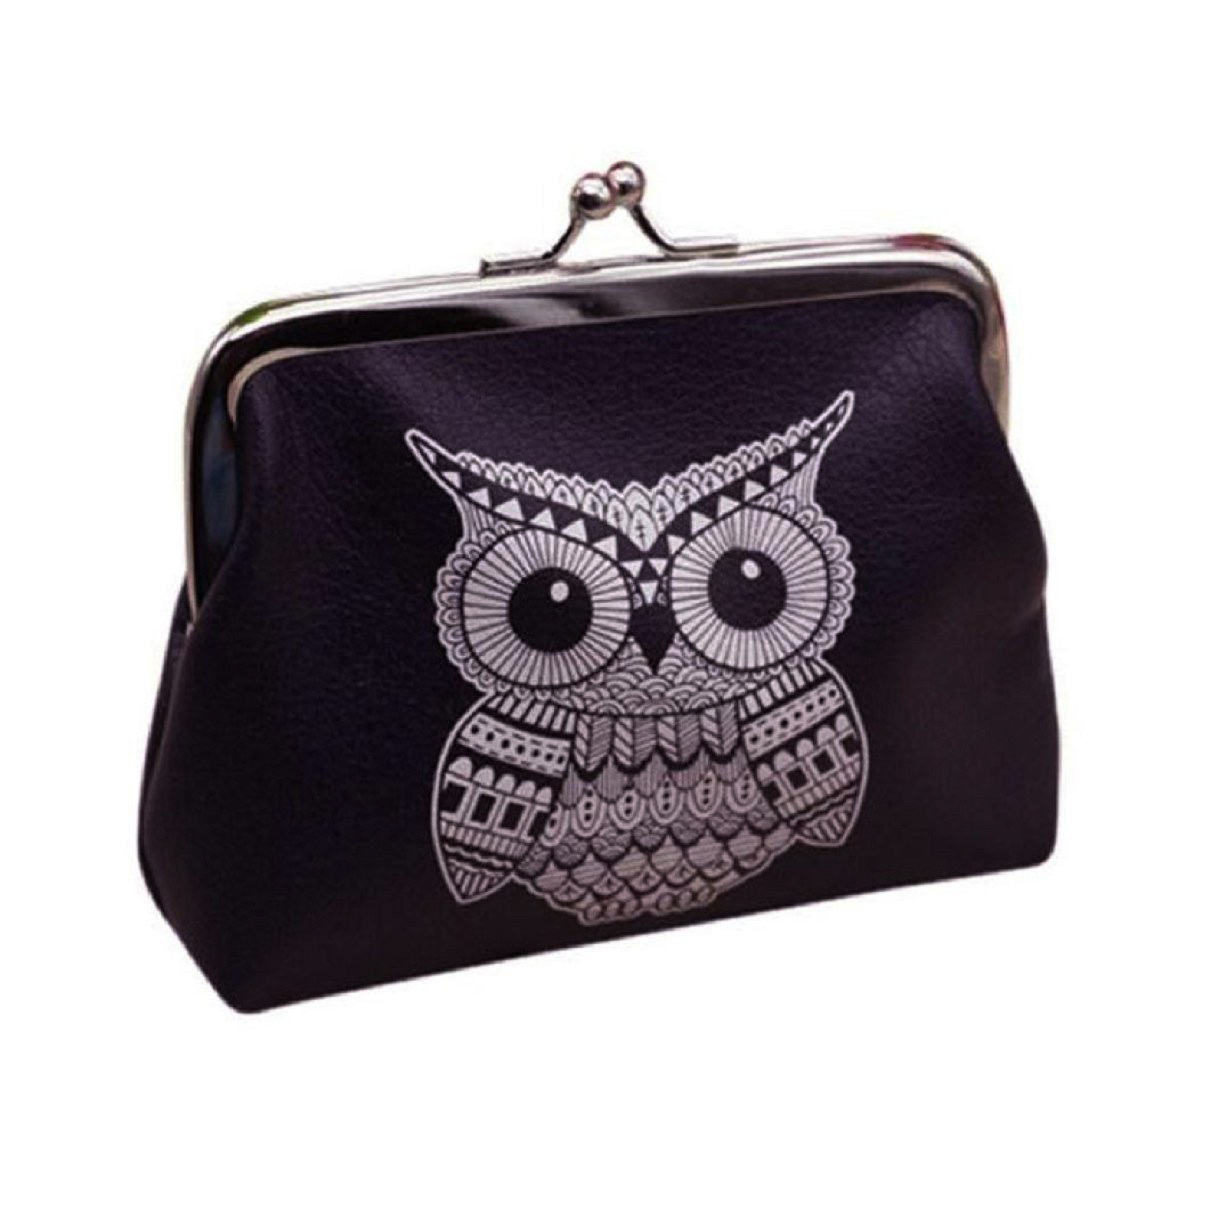 TEXU Female Clutch Small Coin Purses hasp Wallets Hot Card Holders bags Gift 1 pcs (Owl) woweino 2017 attractive clutch bag women lady retro vintage flower small coin purses wallets hot card holders bags gift 1 pcs